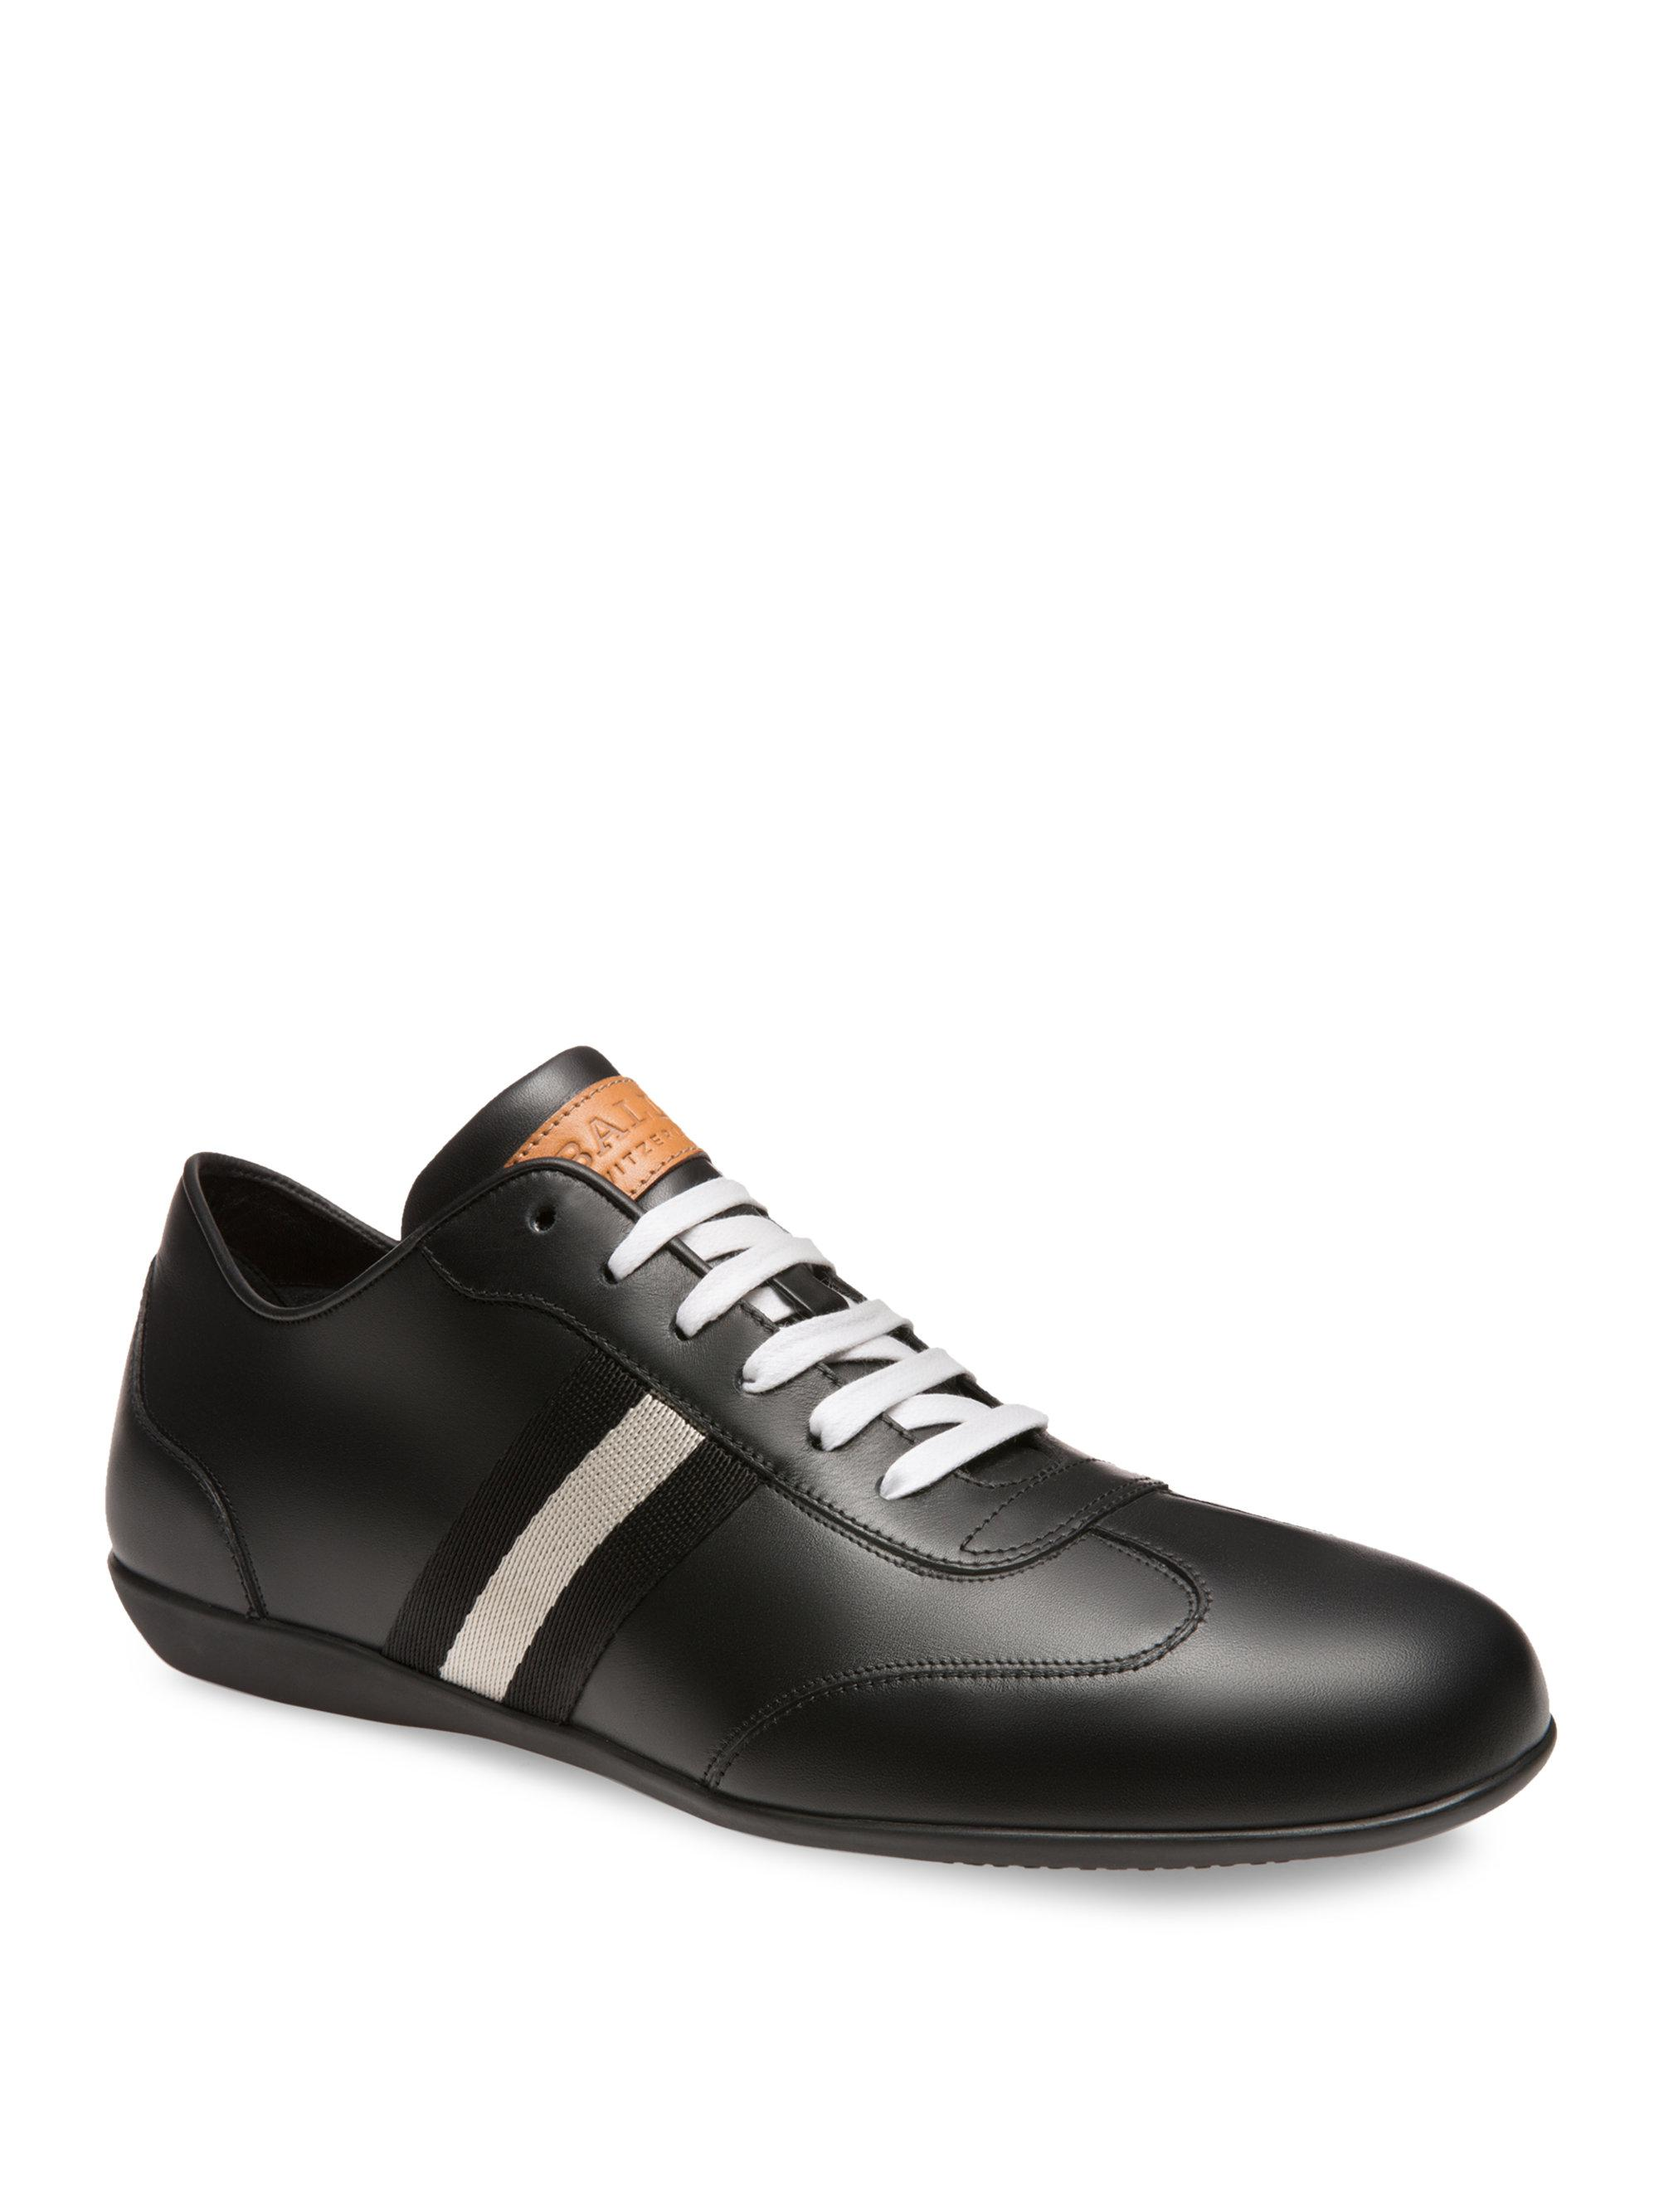 Harlam Black, Mens calf leather sneaker in black Bally